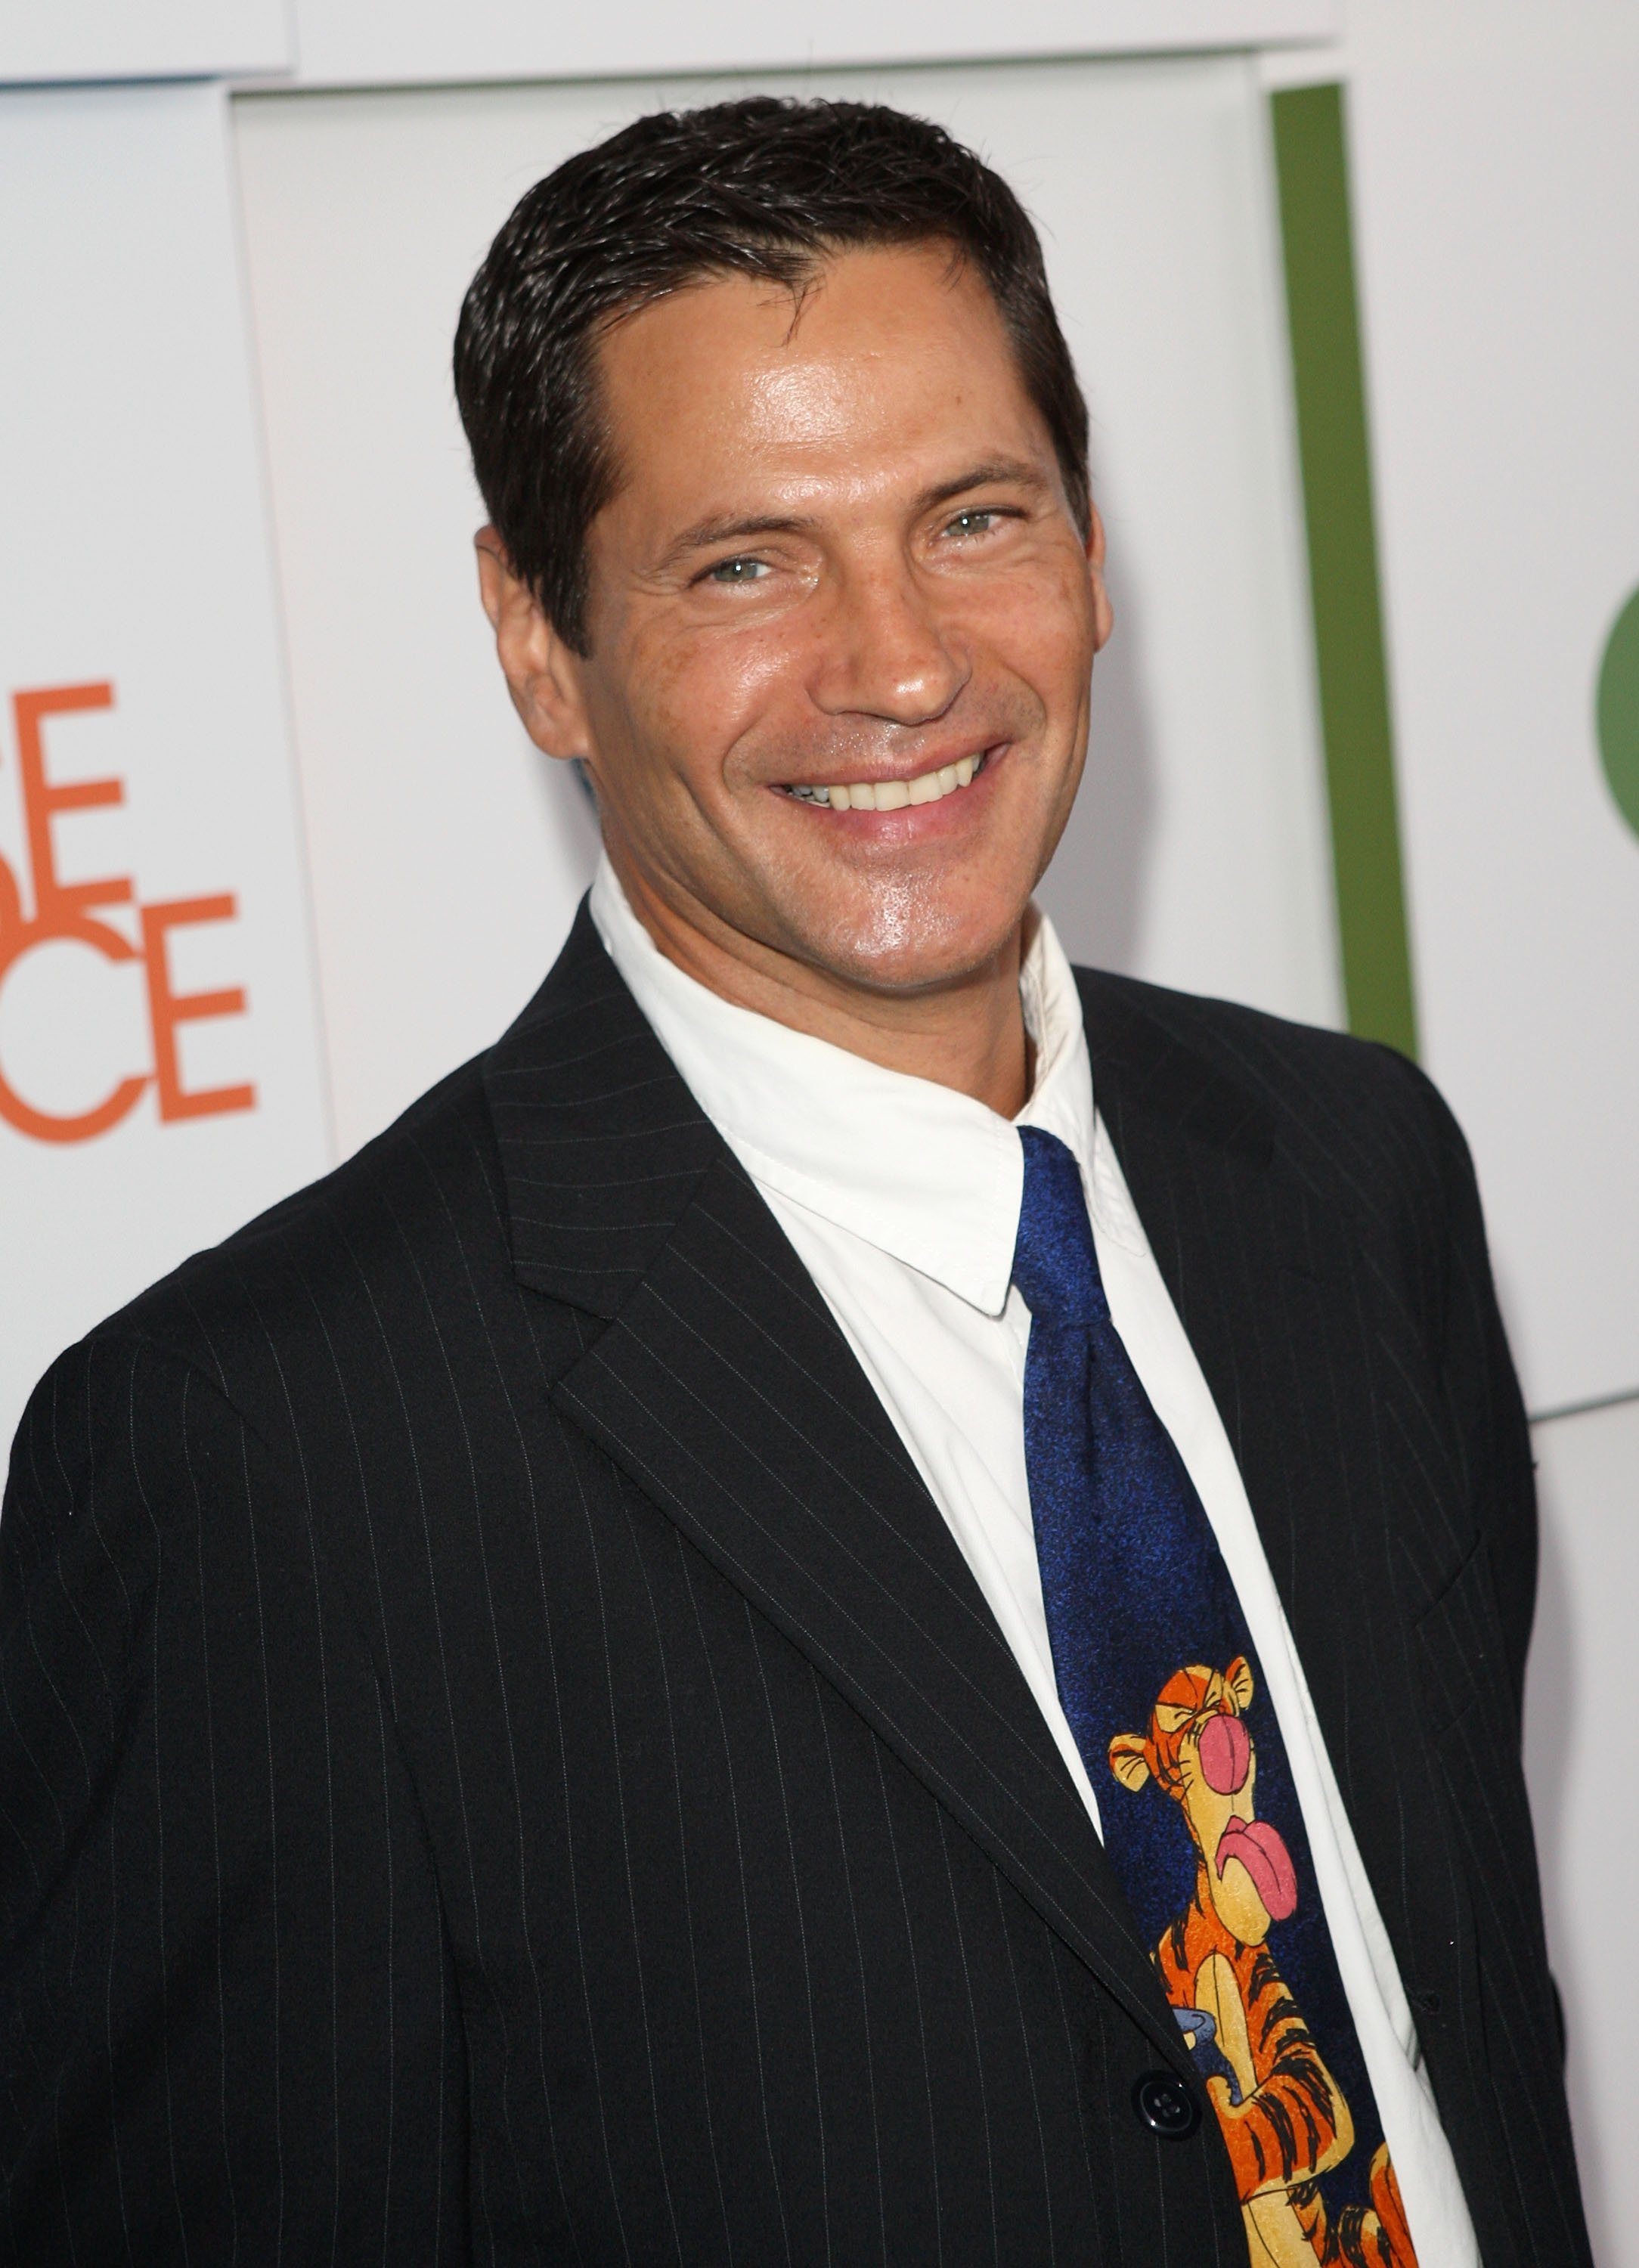 """Thomas Calabro arrives at the CW & AT&T's """"Melrose Place"""" premiere party on Melrose Place on August 22, 2009, in Los Angeles, California. 